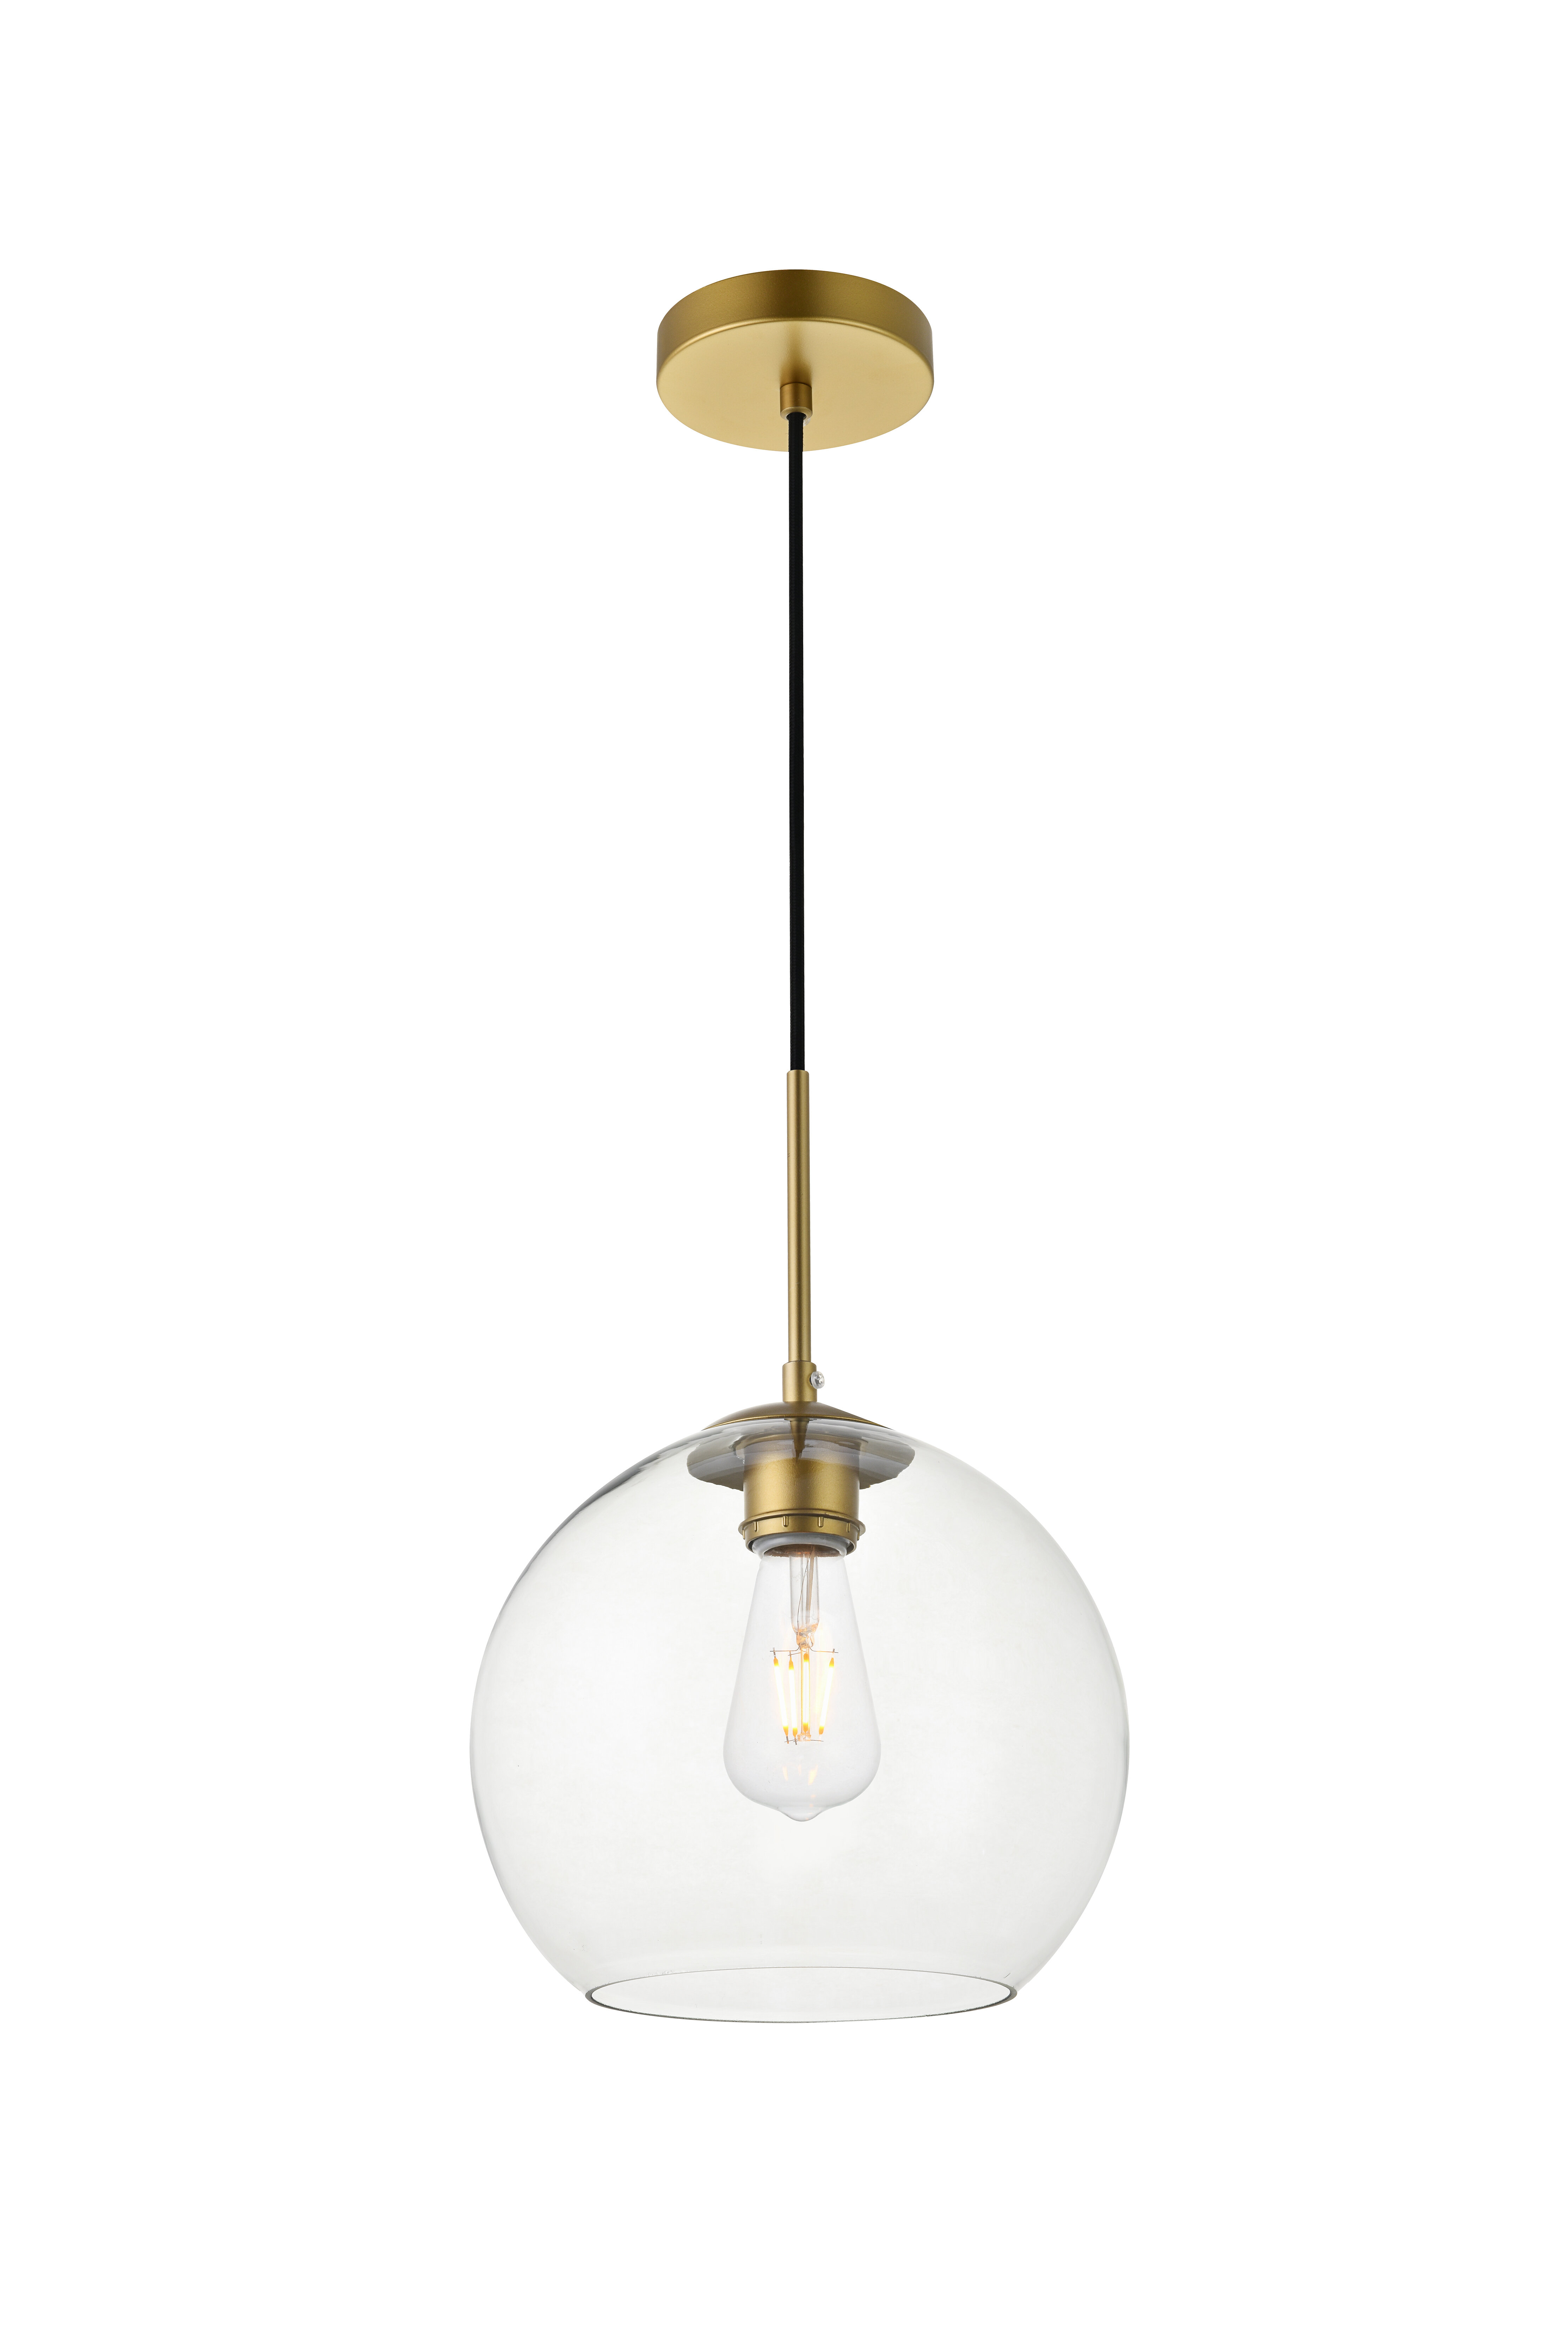 Yearwood 1 Light Single Globe Pendant Within Neal 1 Light Single Teardrop Pendants (View 20 of 30)